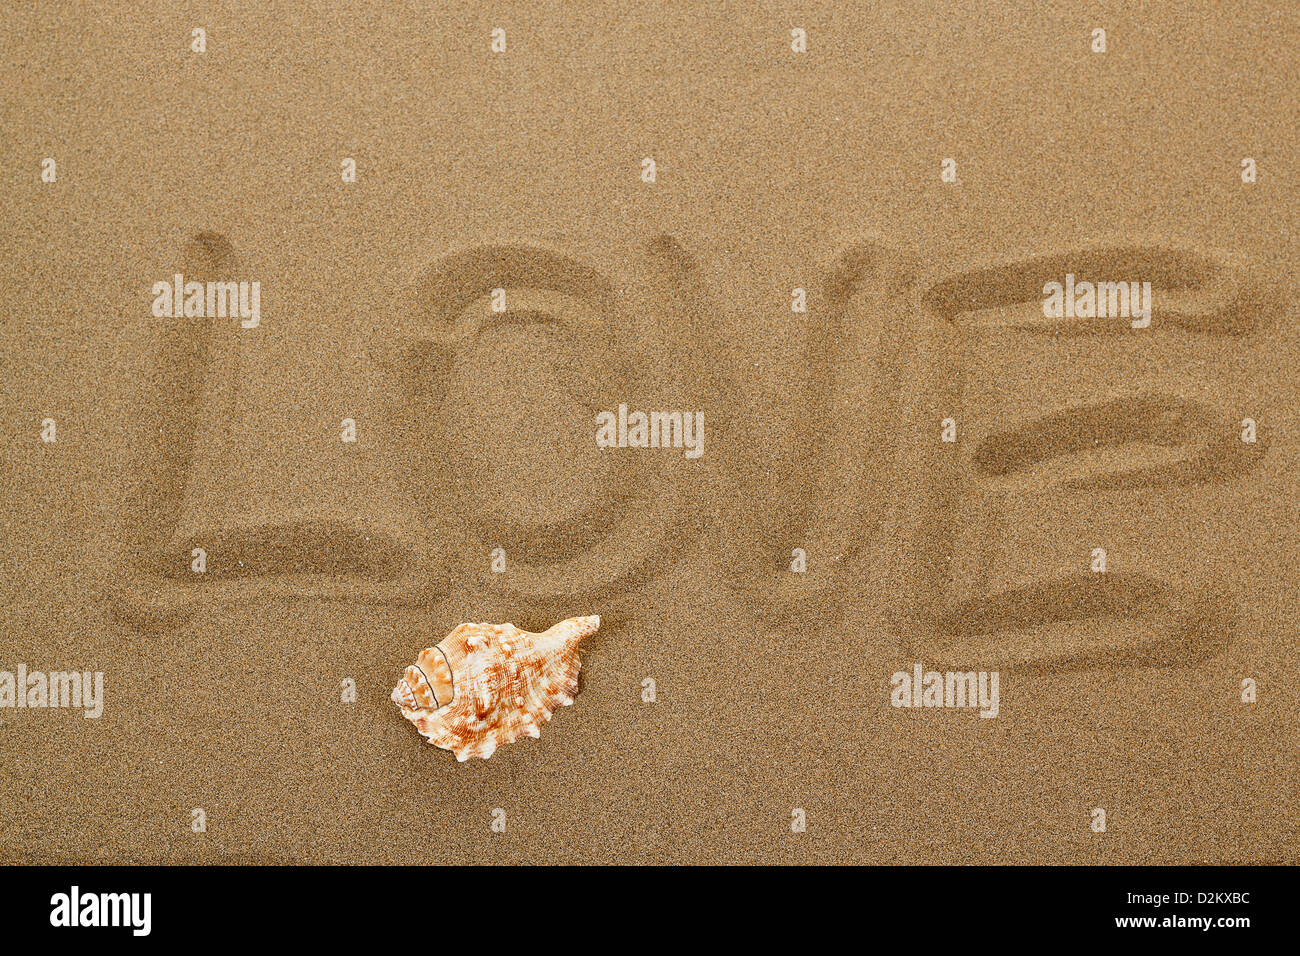 love message with seashell written in sand - Stock Image